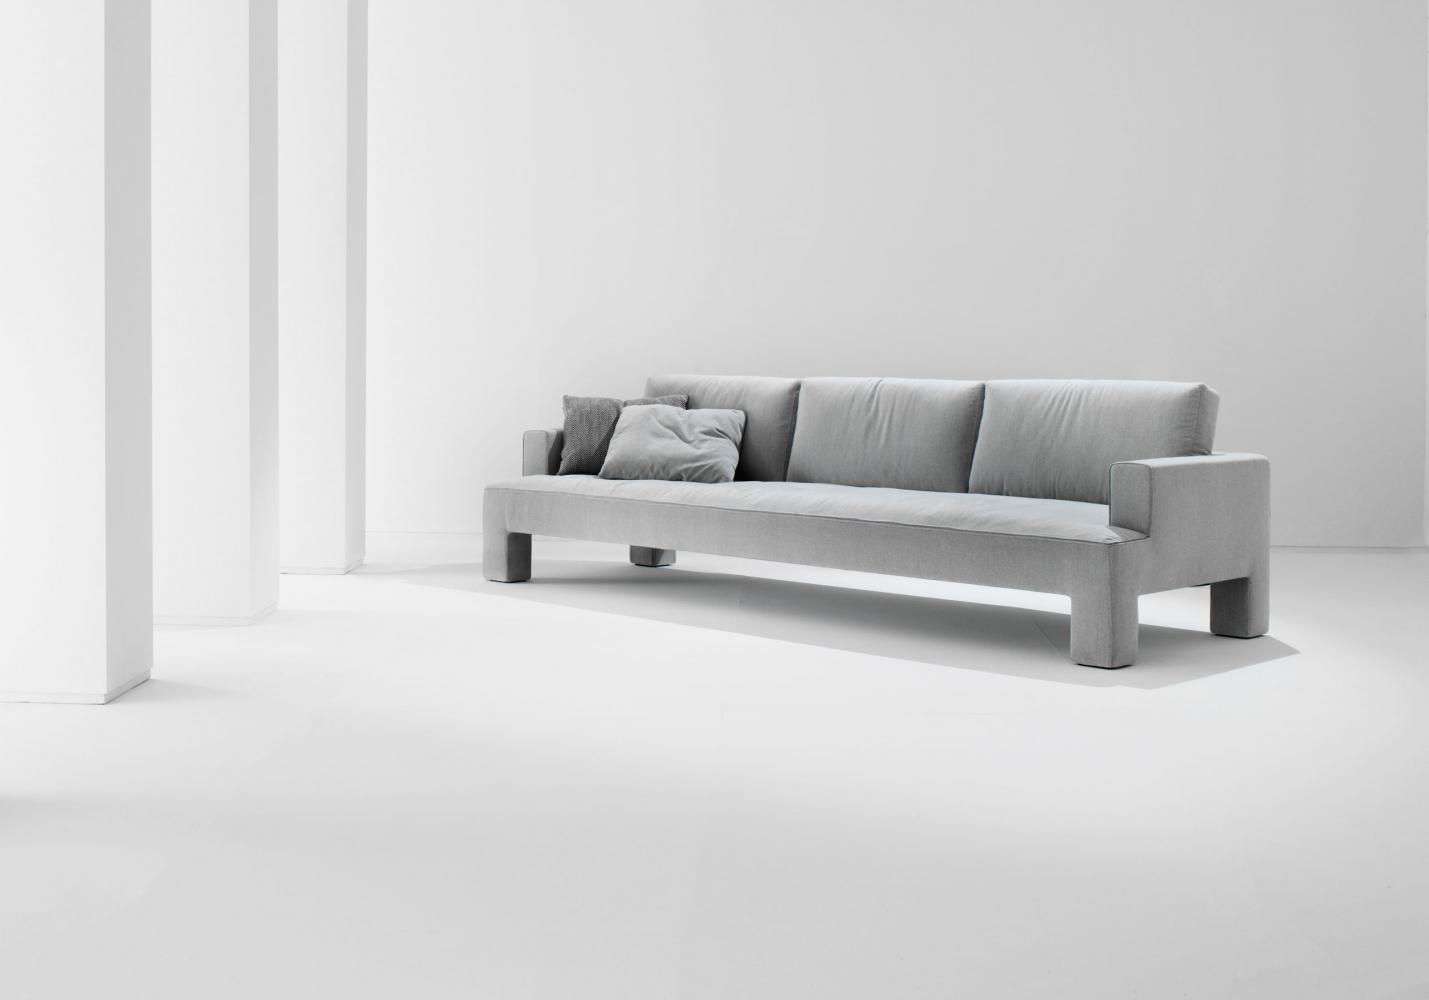 Three seater modern luxury sofa in white leather